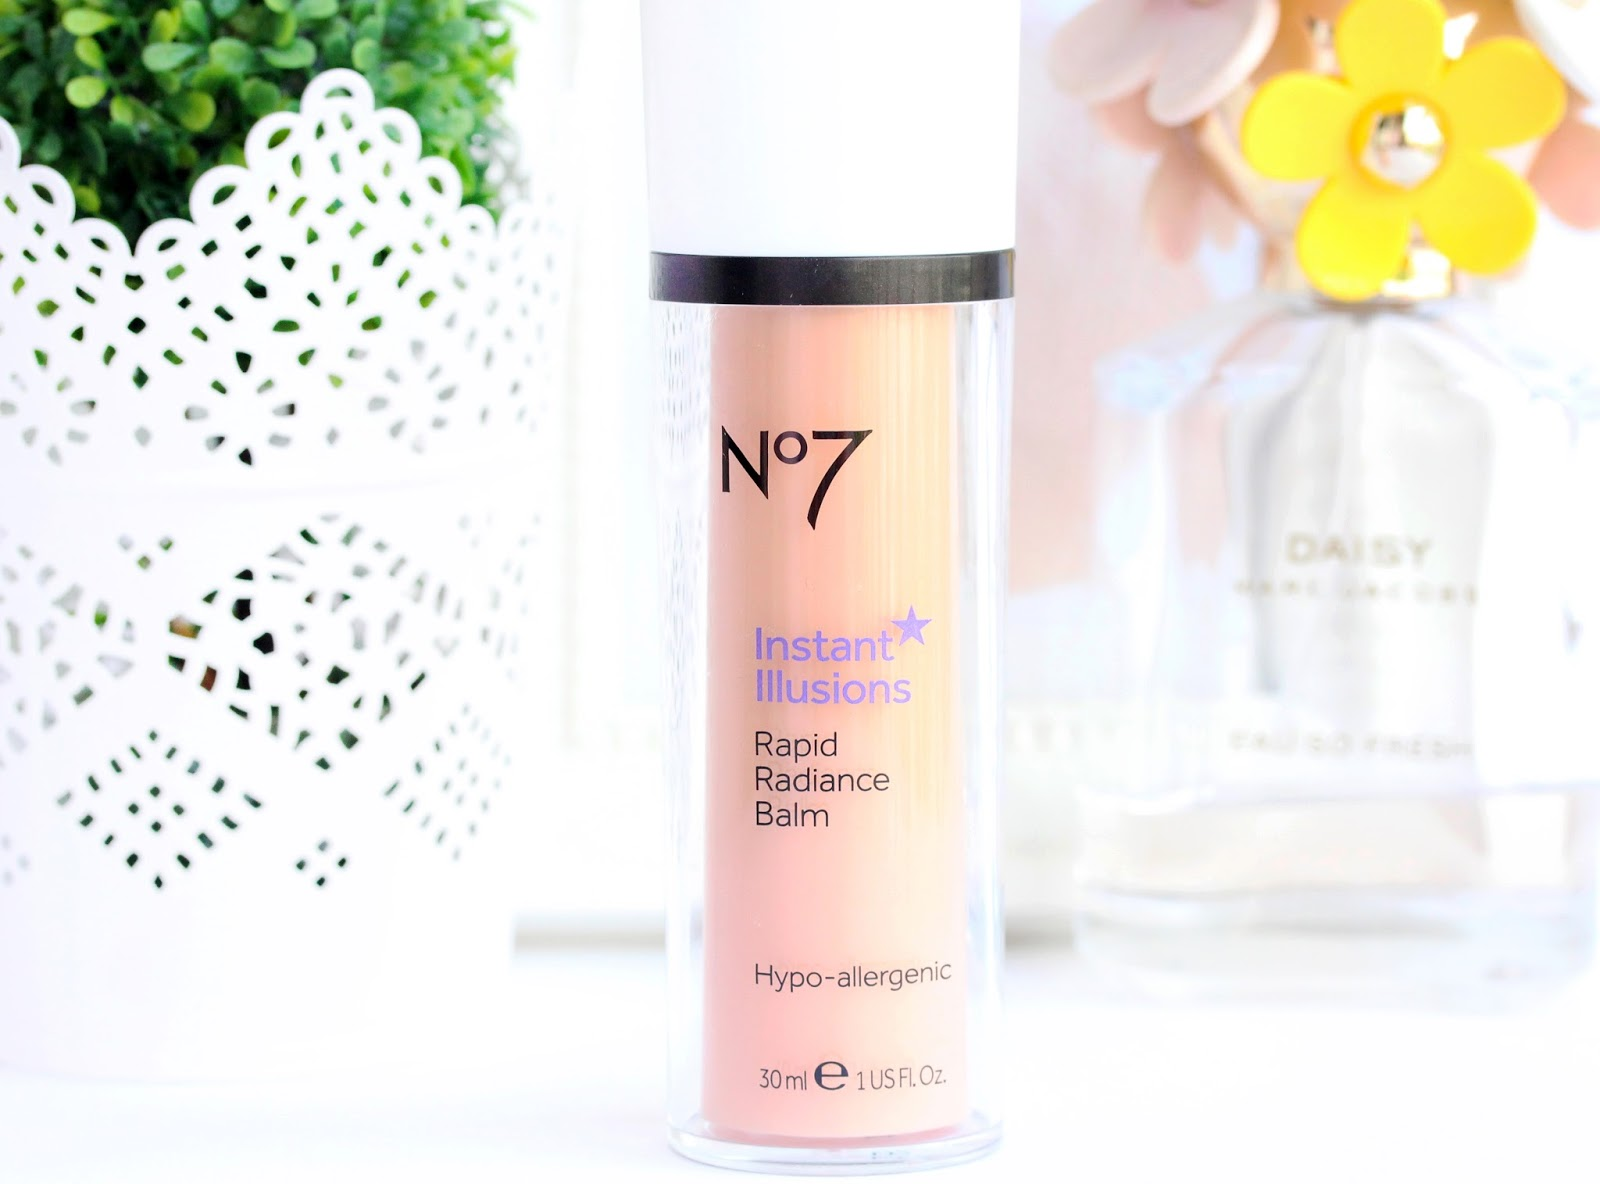 No7 Instant Illusions Rapid Radiance Balm